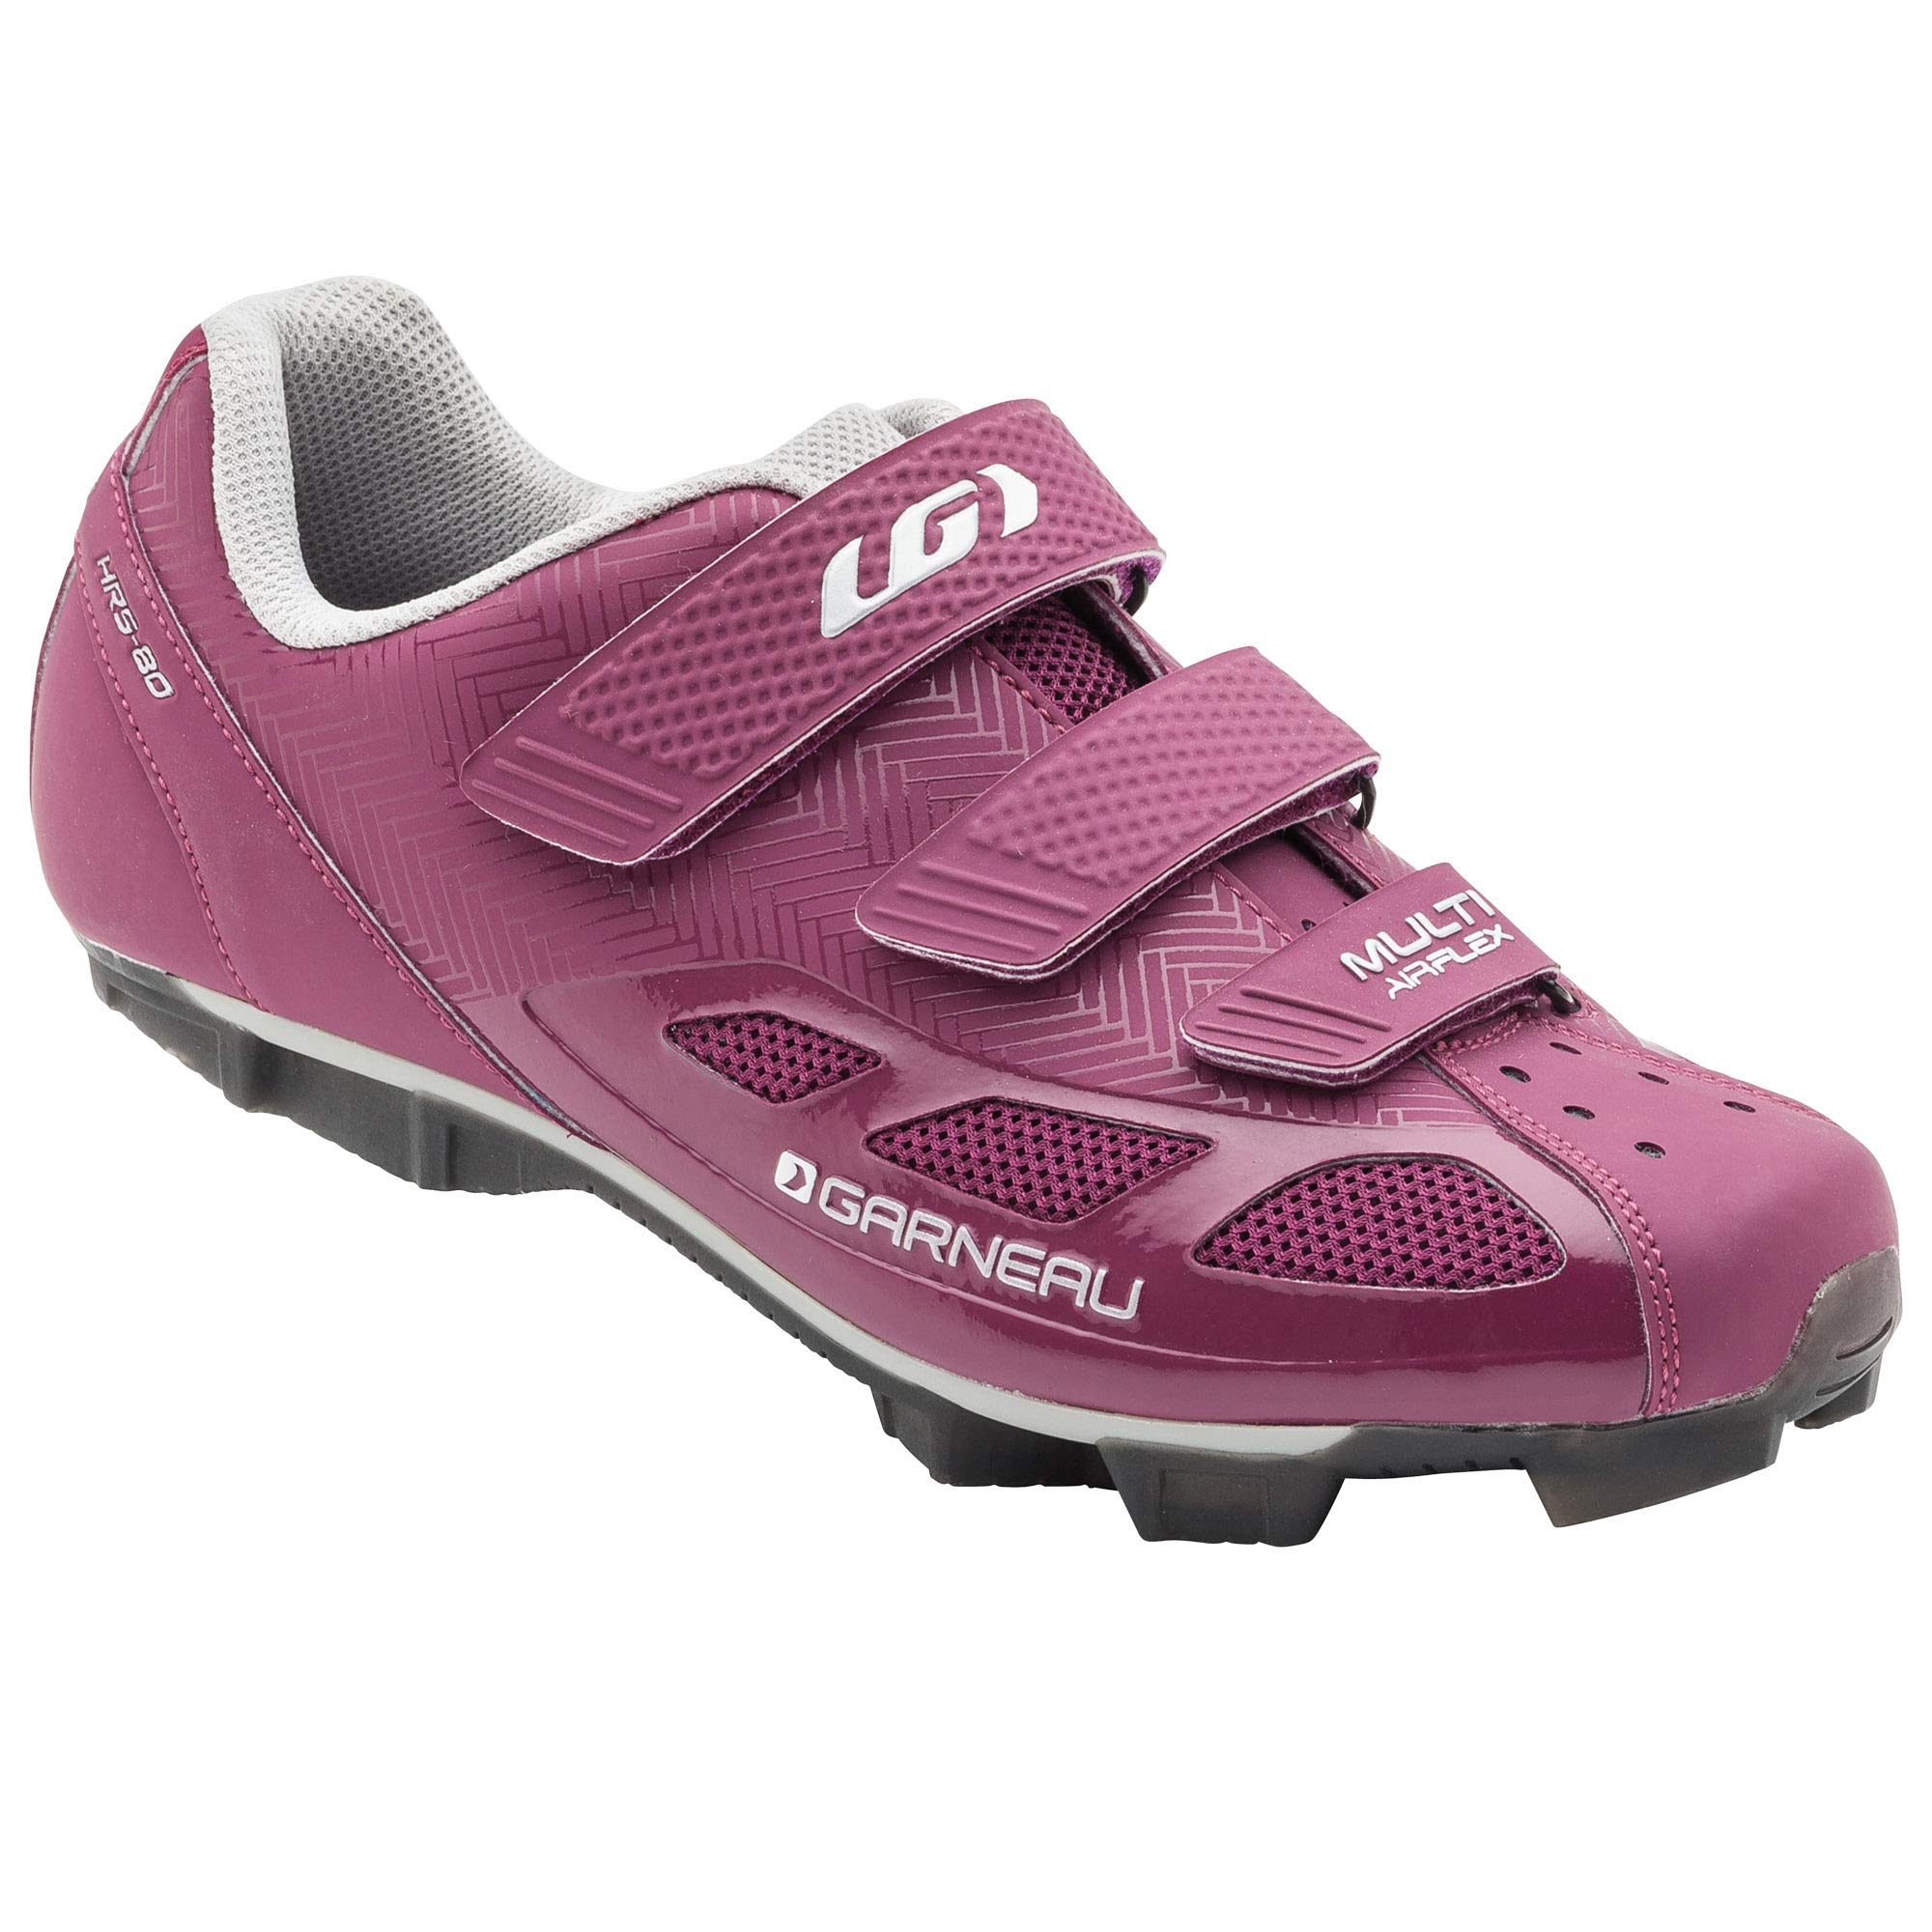 Louis Garneau Women's Multi Air Flex Bike Shoes for Indoor Cycling, Commuting and MTB, SPD Cleats Compatible with MTB Pedals, Magenta/Drizzle, US (8), EU (39) by Louis Garneau